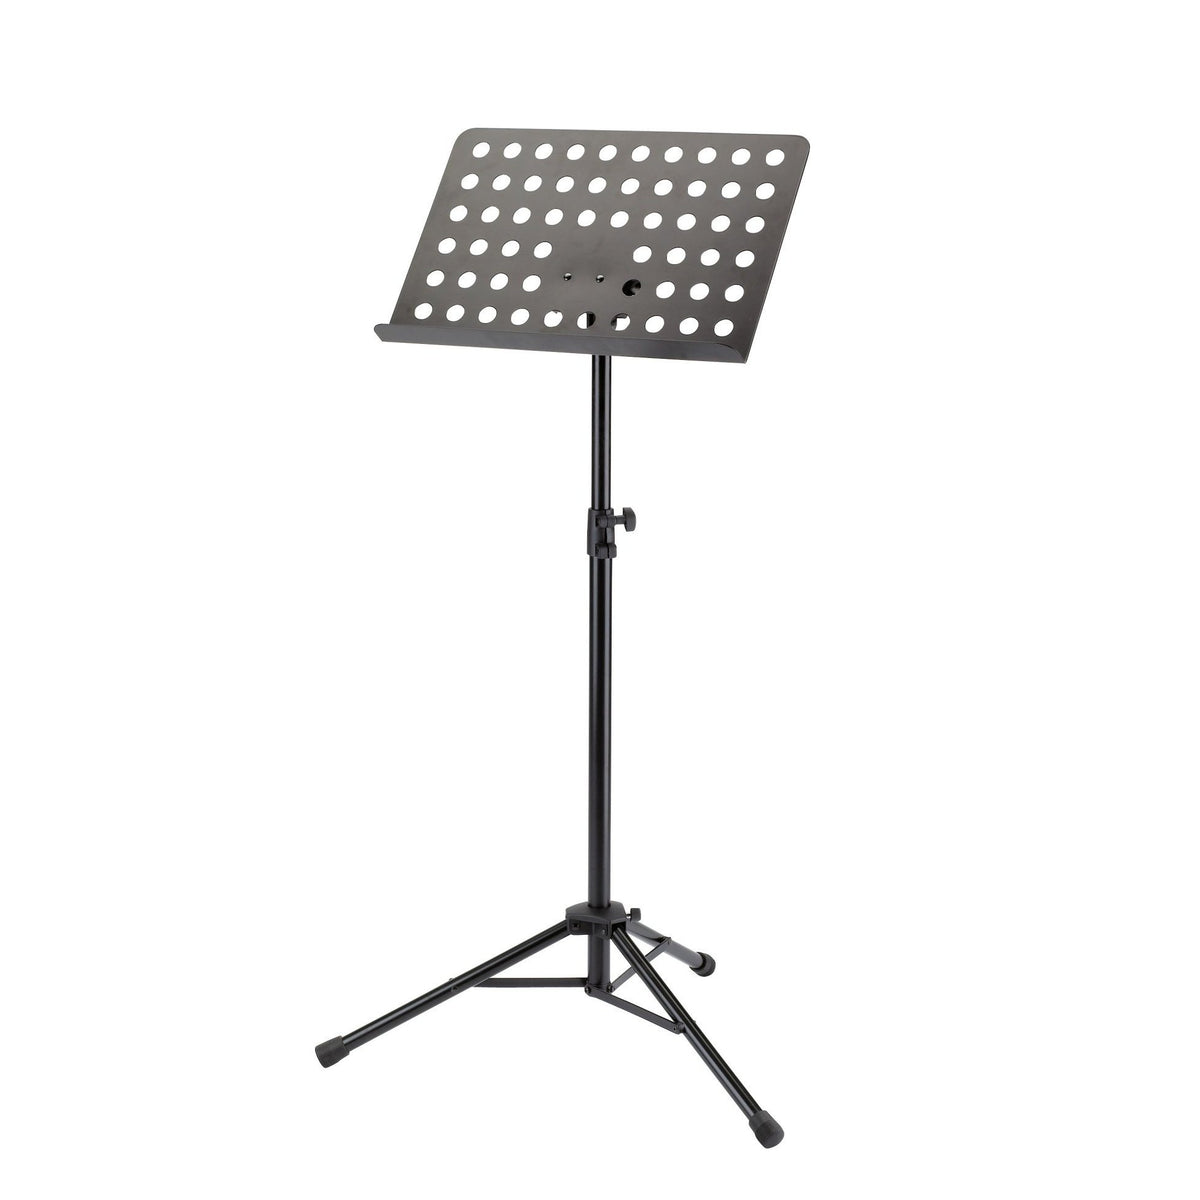 König & Meyer - 11940 Topline Orchestra Music Stand-Music Stand-König & Meyer-Music Elements